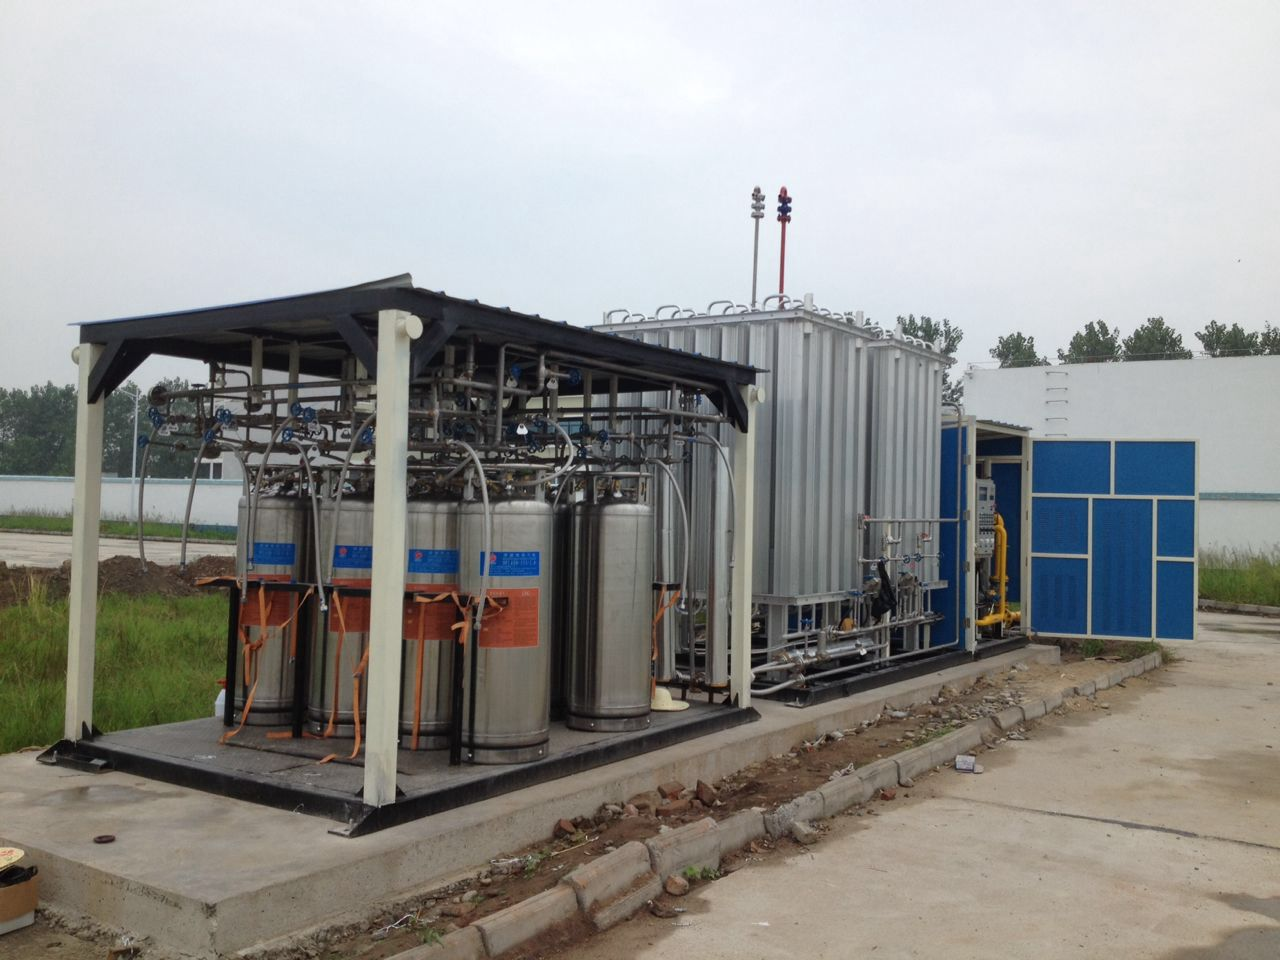 retail mini-liquefaction plant and LNG filling without power skid-mounted devices.